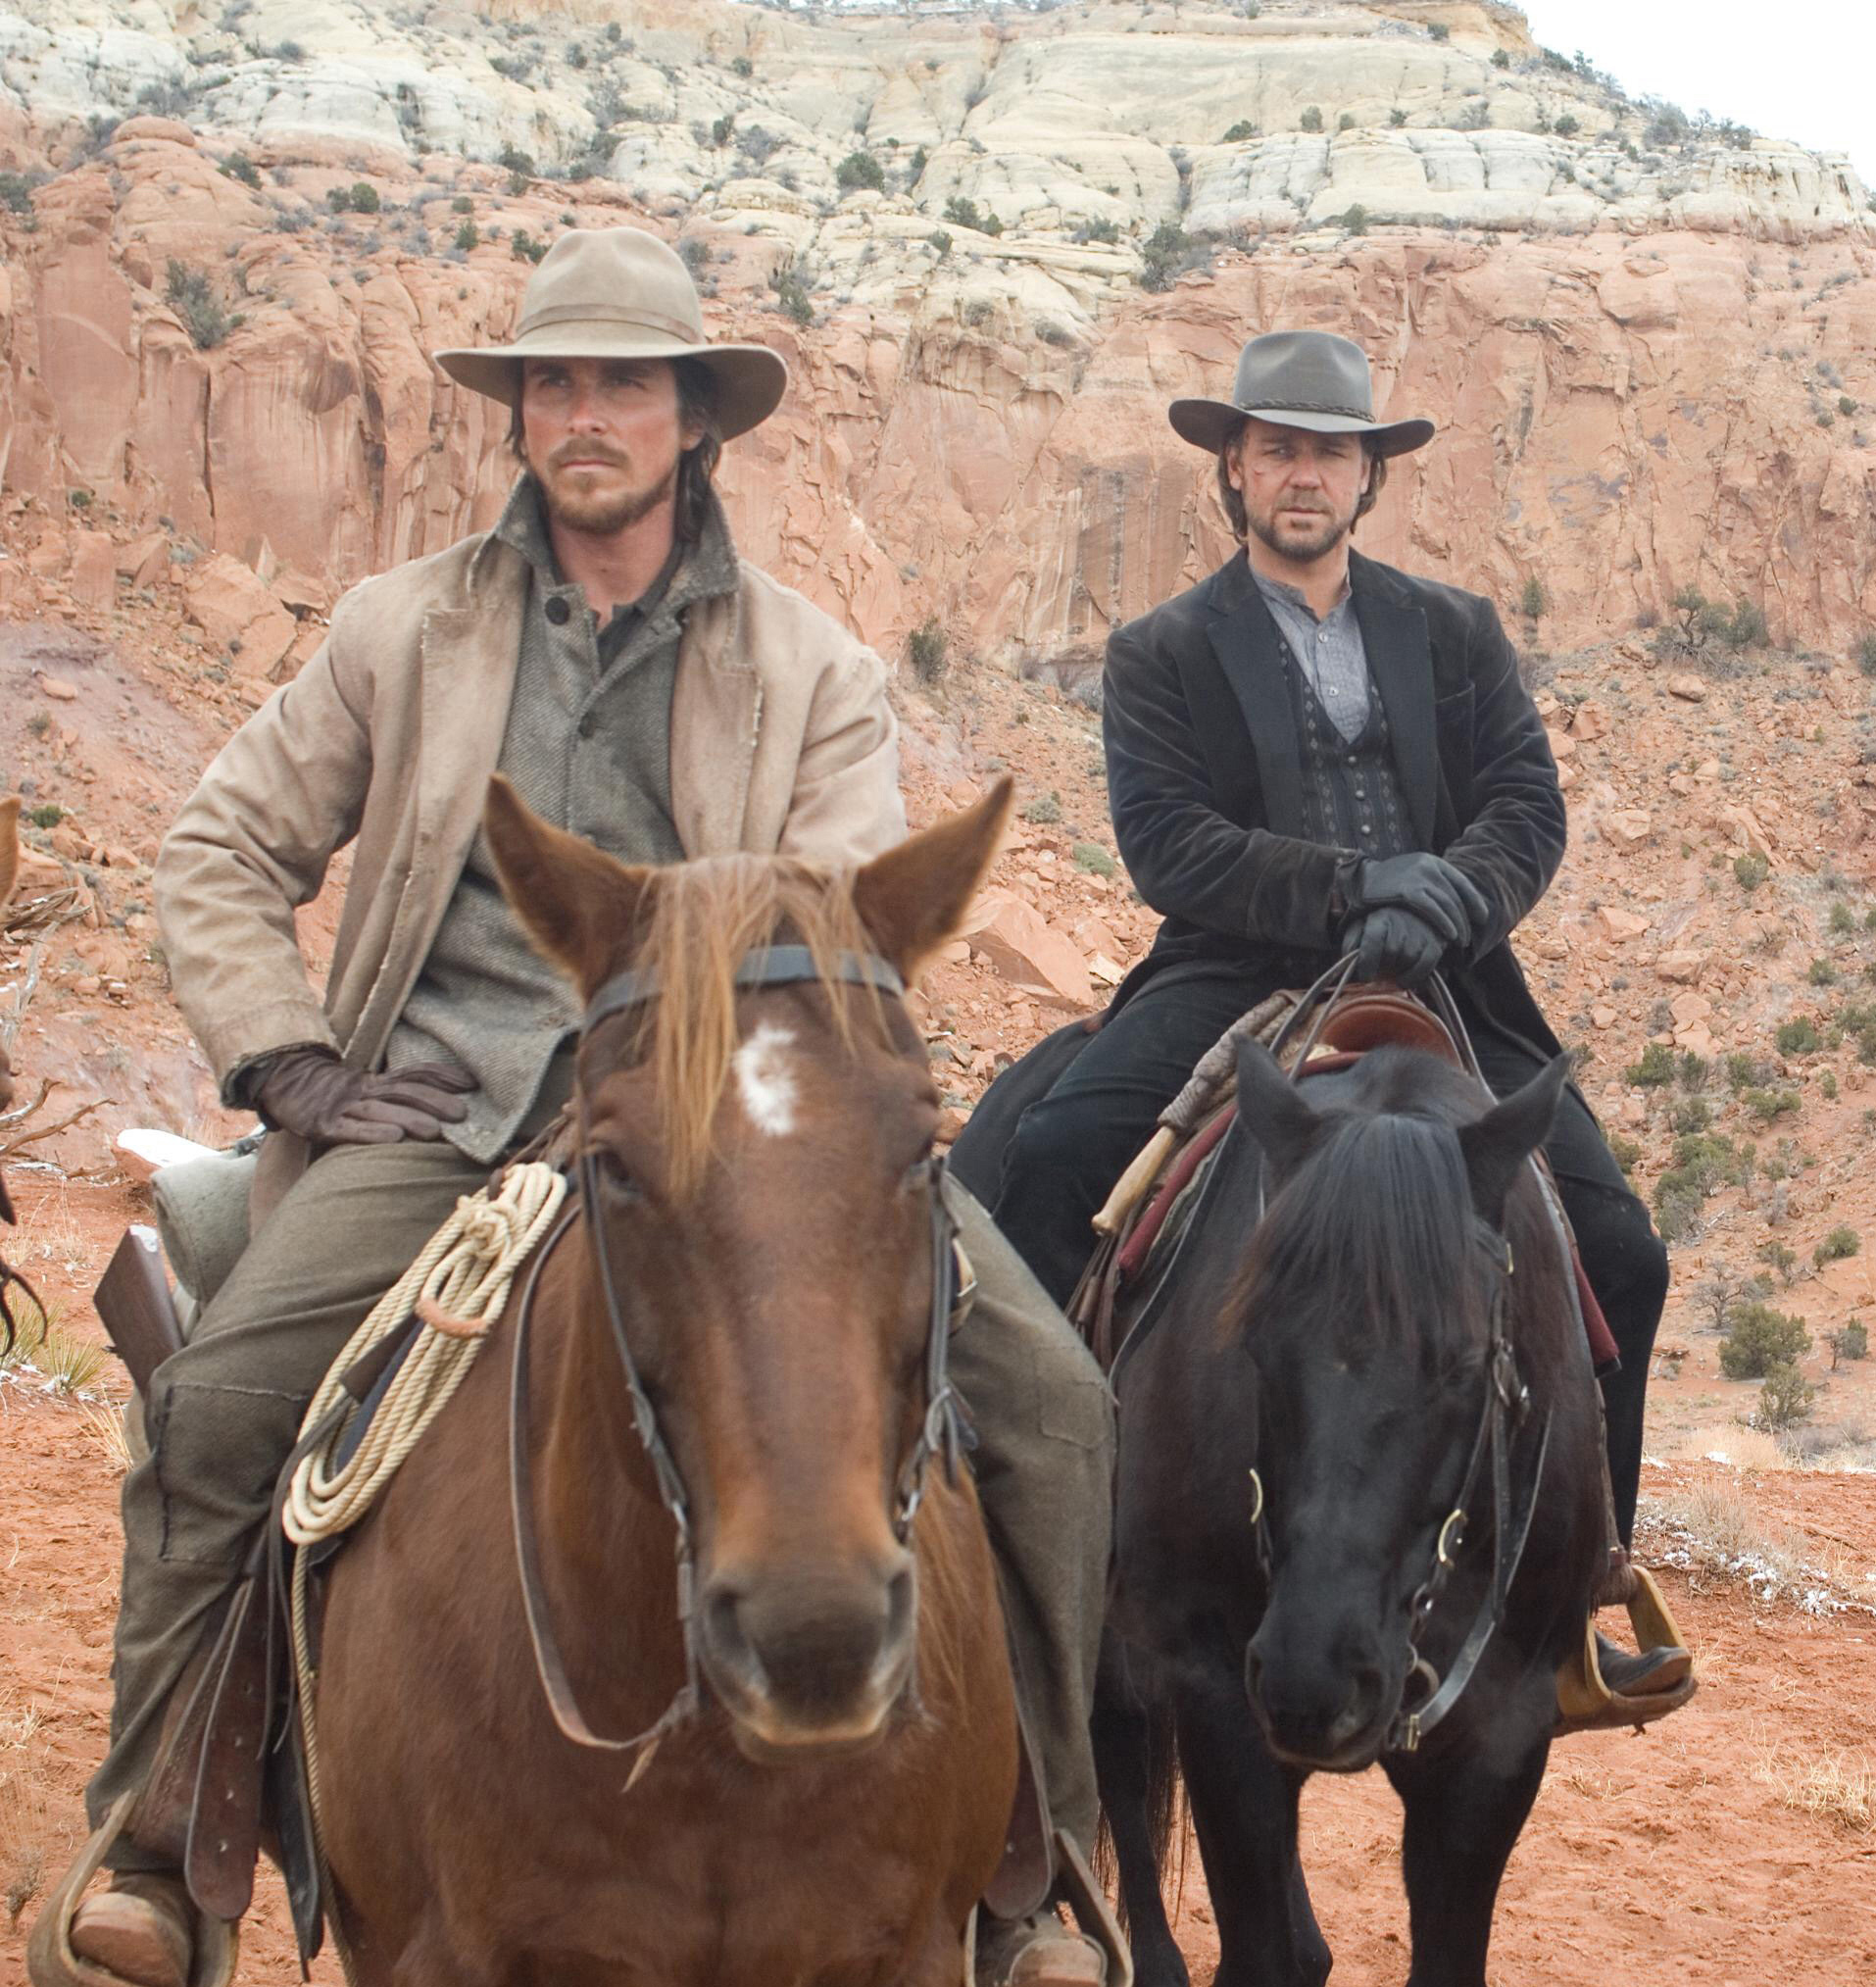 3 10 to Yuma, Christian Bale, Russell Crowe